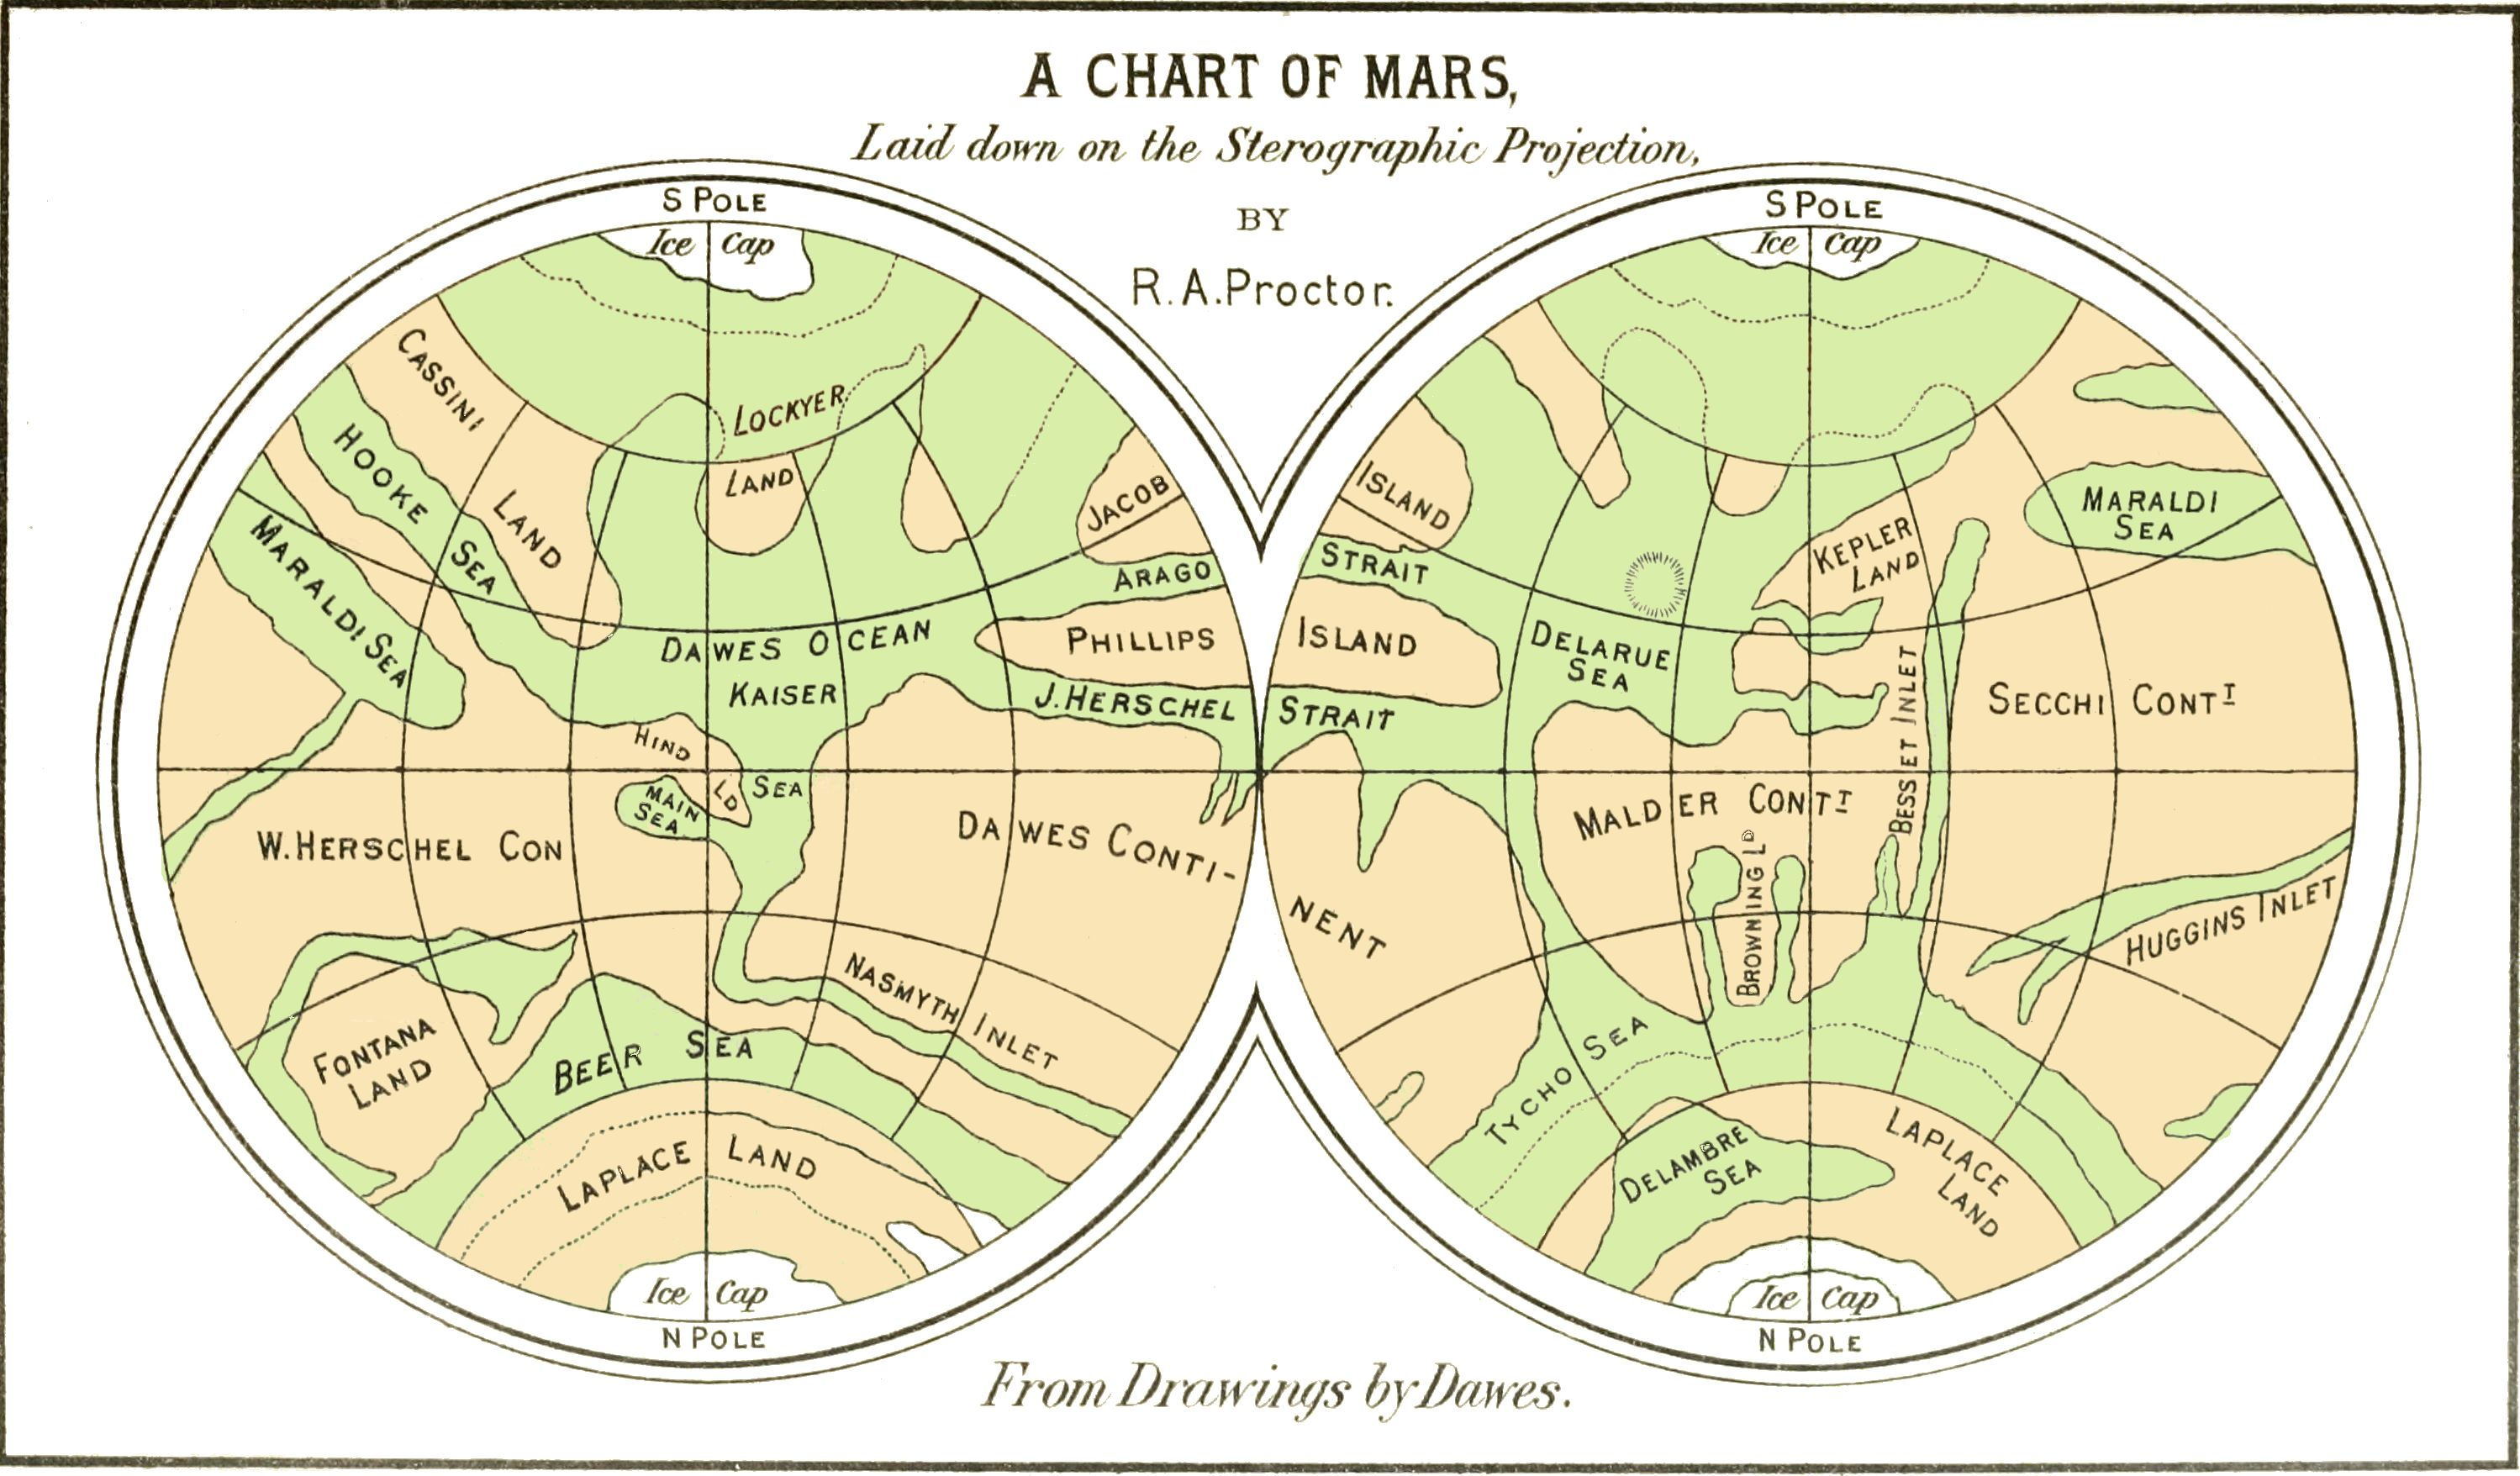 Cap Conversion Chart: PSM V35 D055 A chart of mars from drawings by dawes.jpg ,Chart